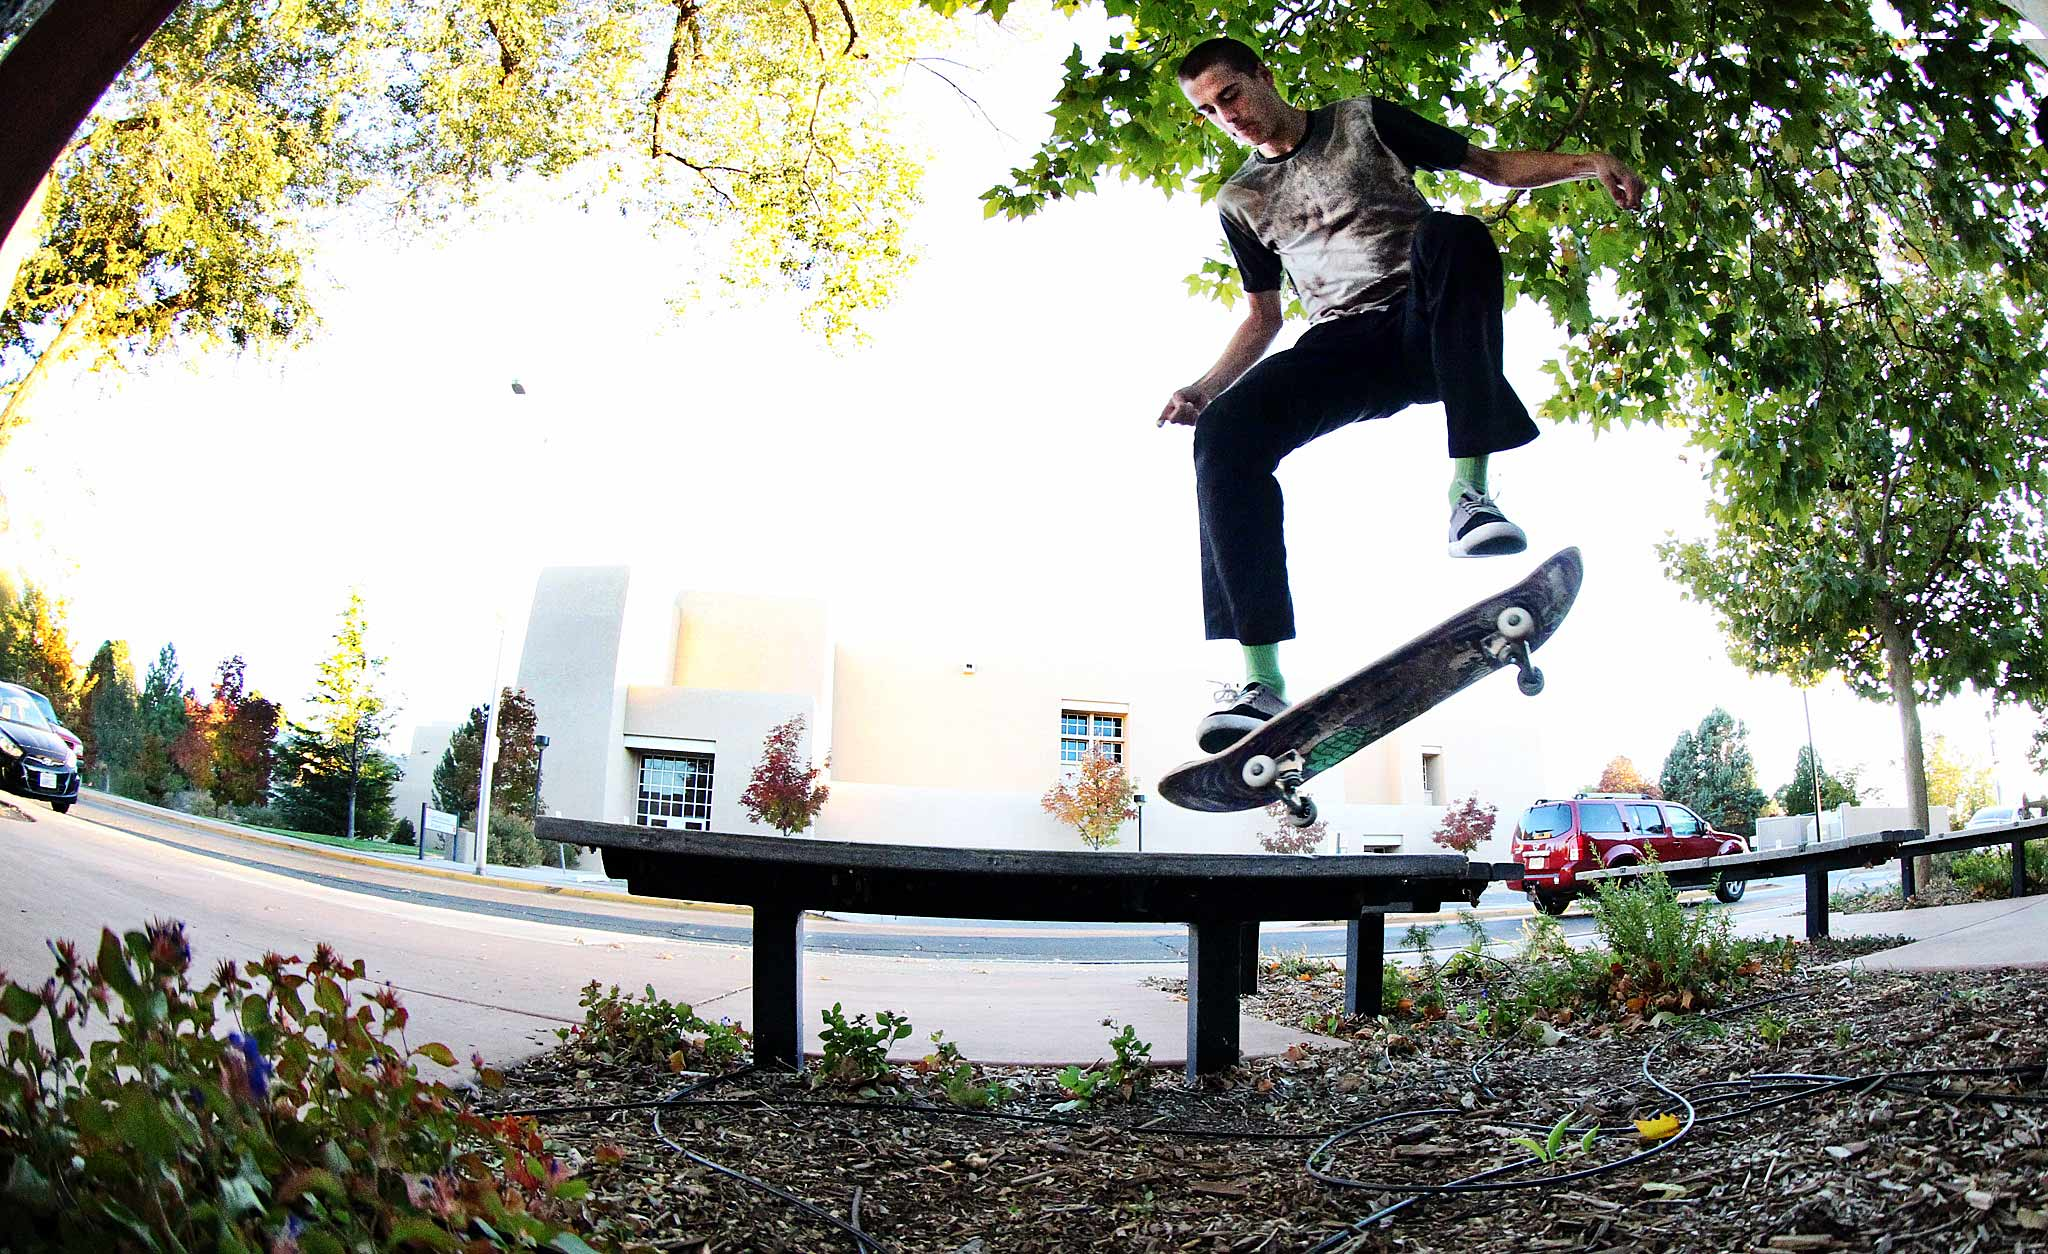 Blake Carpenter, Kickflip Crooks